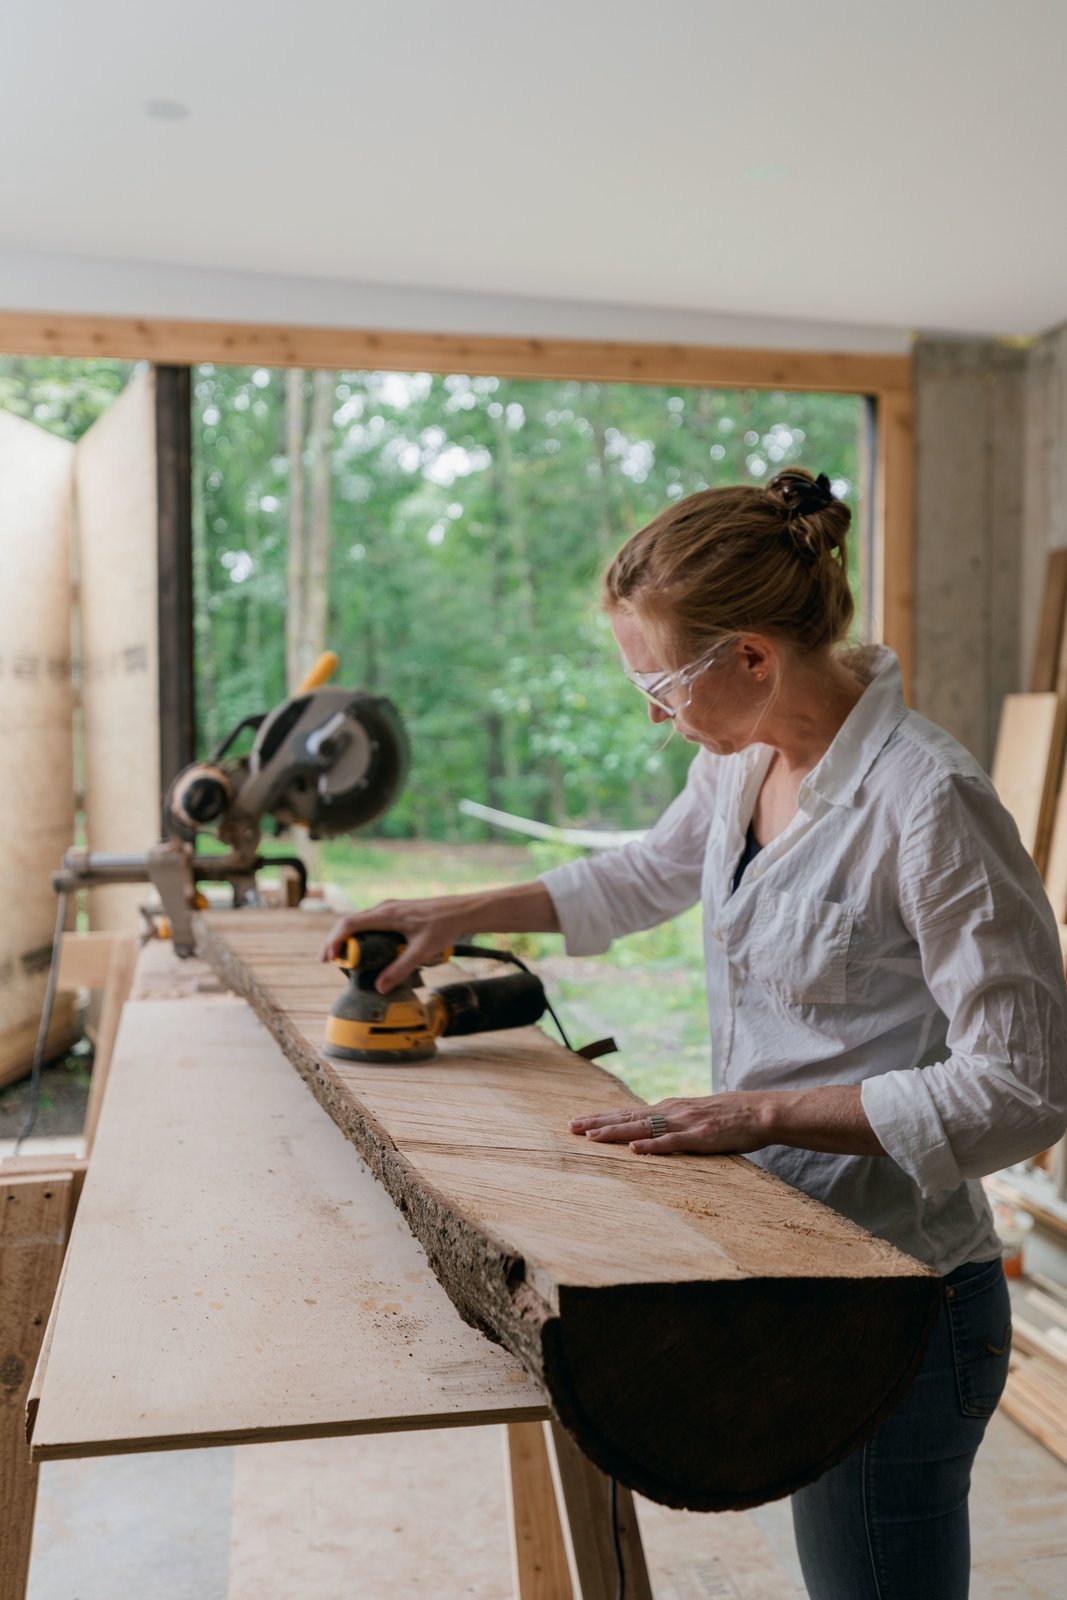 Garage The home's multifunctional layout gives Marica dedicated space for woodworking in her workshop, and Brock for tinkering with antique cars in the garage.  Photo 12 of 12 in A Couple's Scenic Getaway Built For Creating and Tinkering  in New York's Hudson Valley